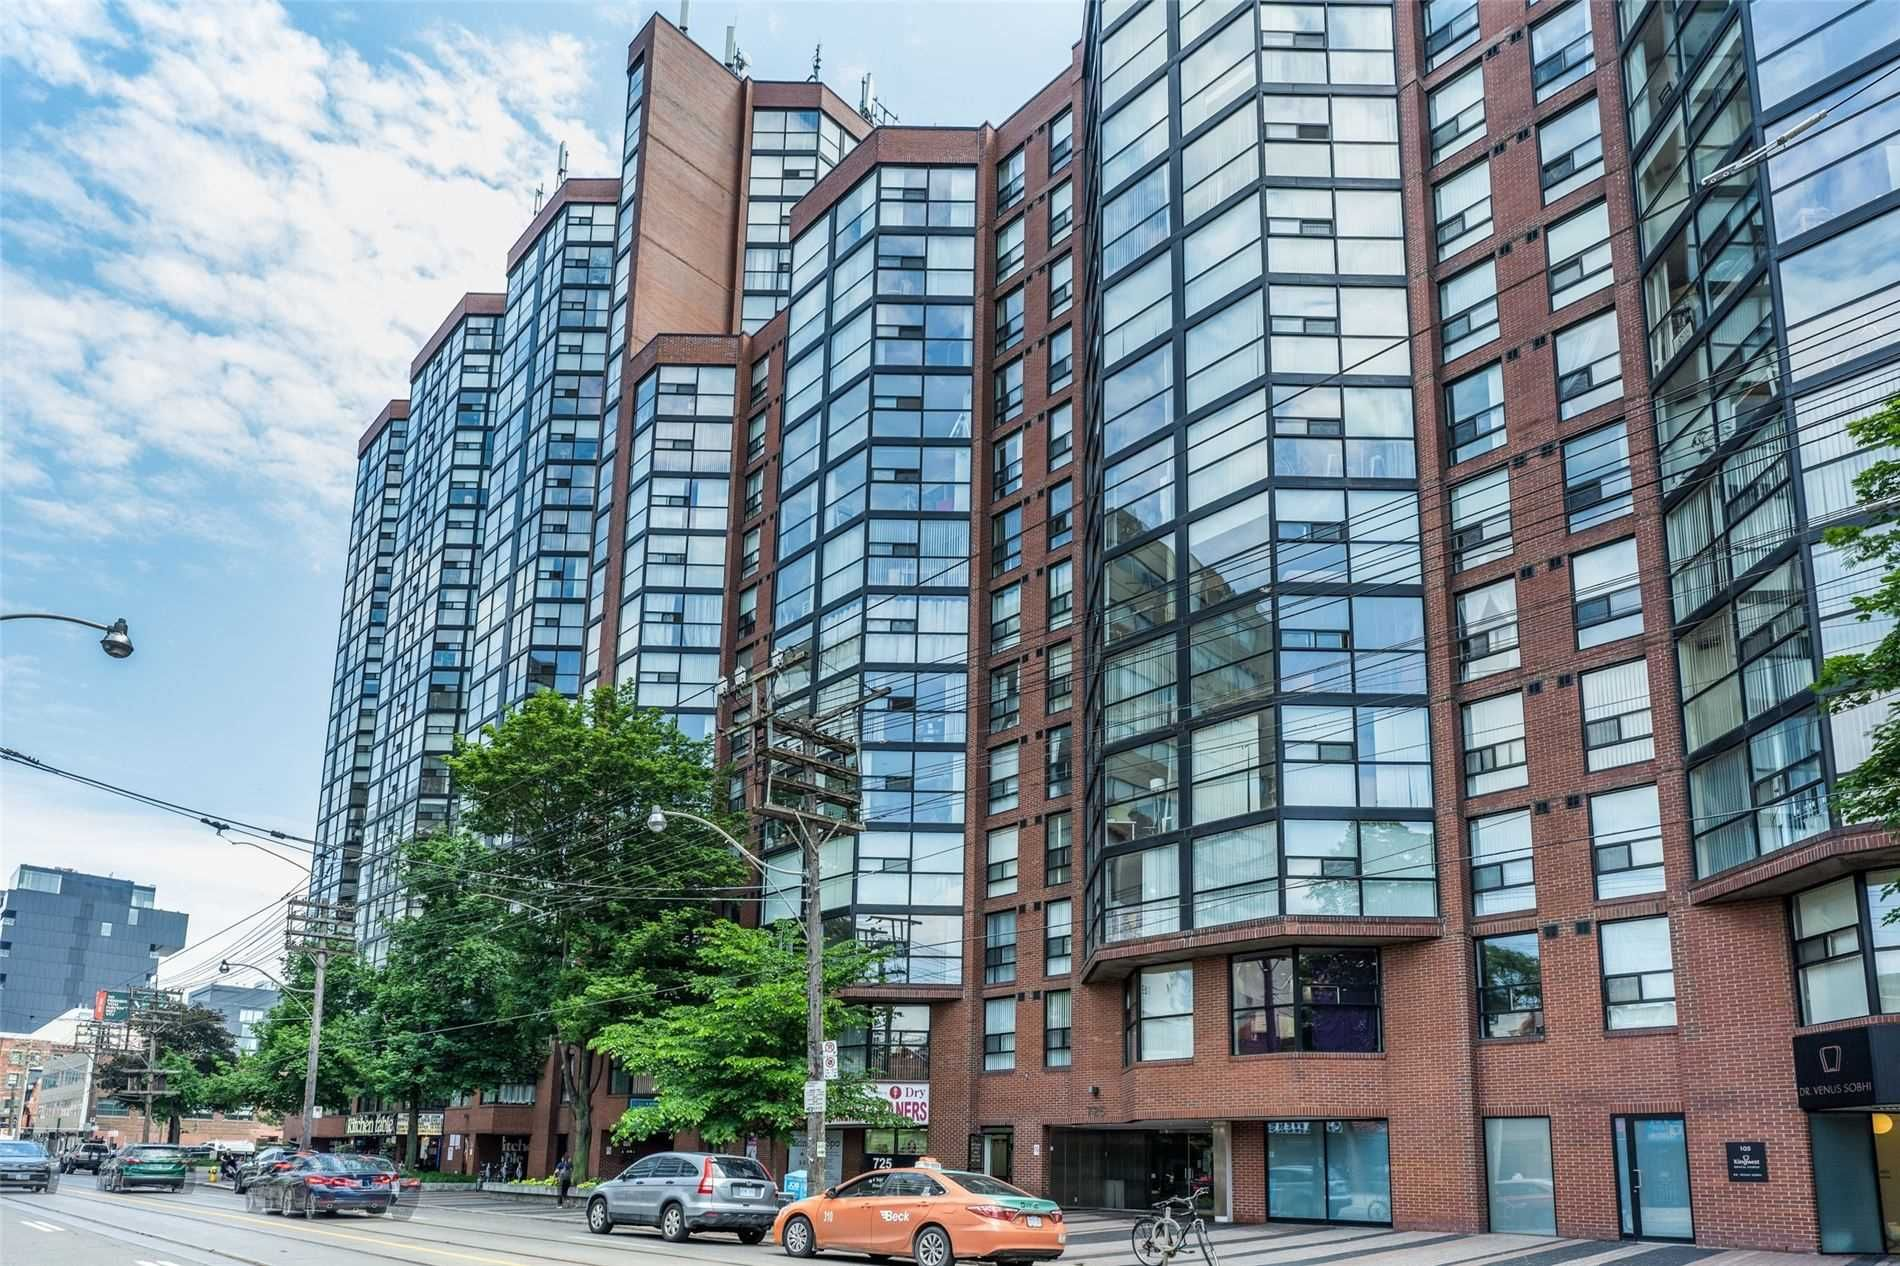 705 King St W, unit 201 for sale in Toronto - image #1